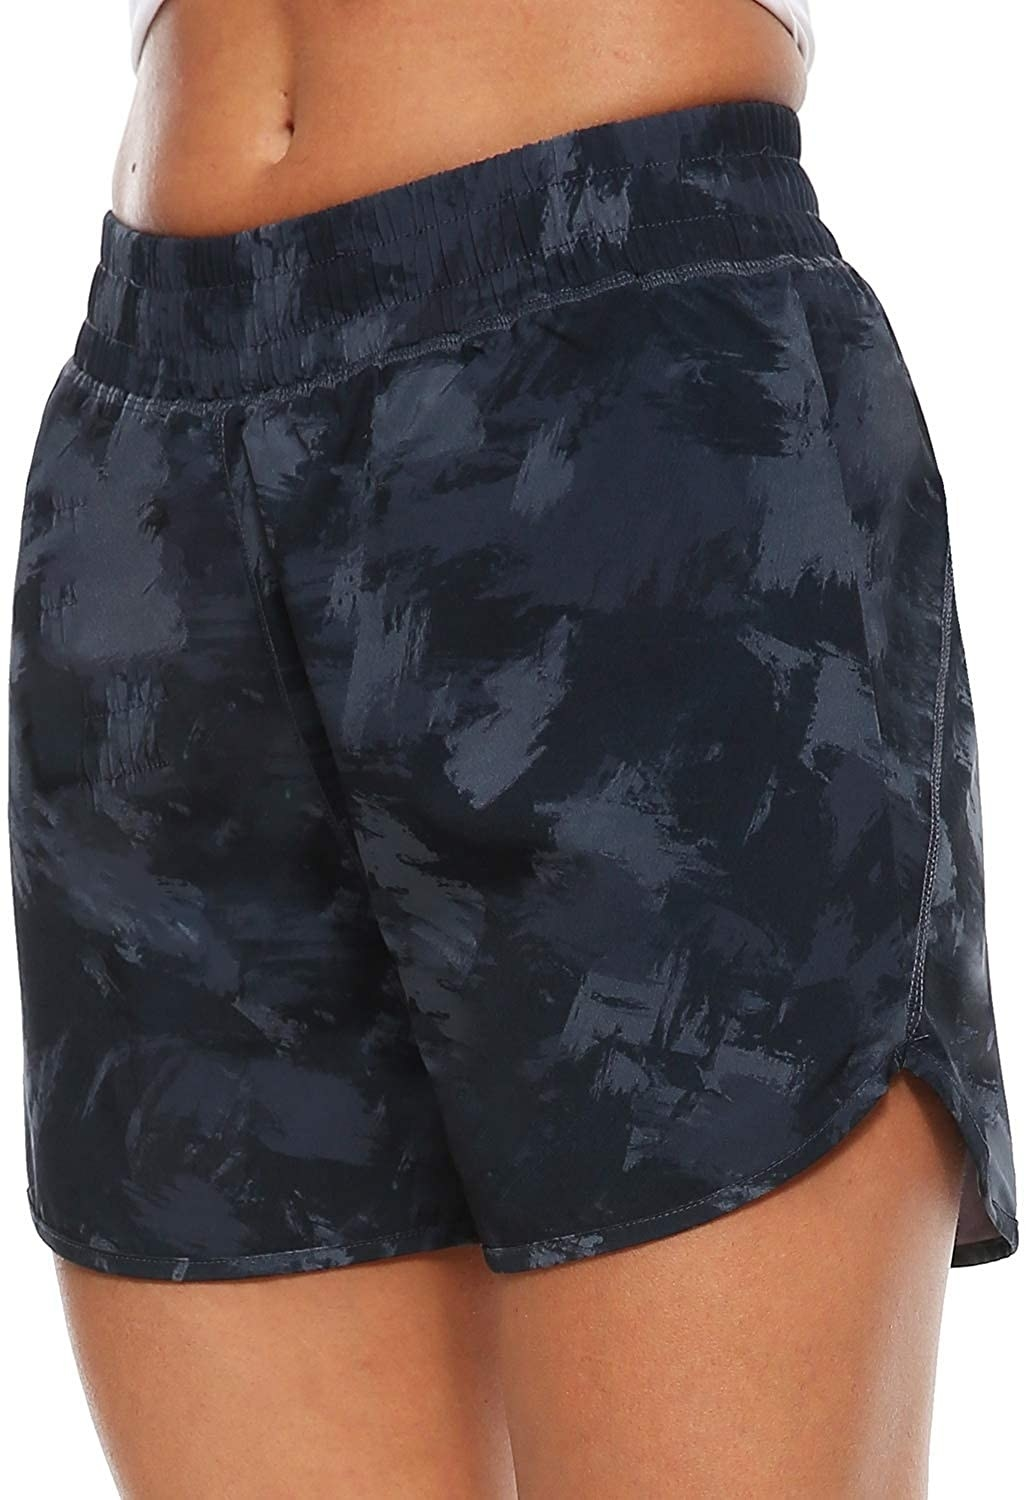 The shorts with an elastic waist band and black and grey brushed pattern